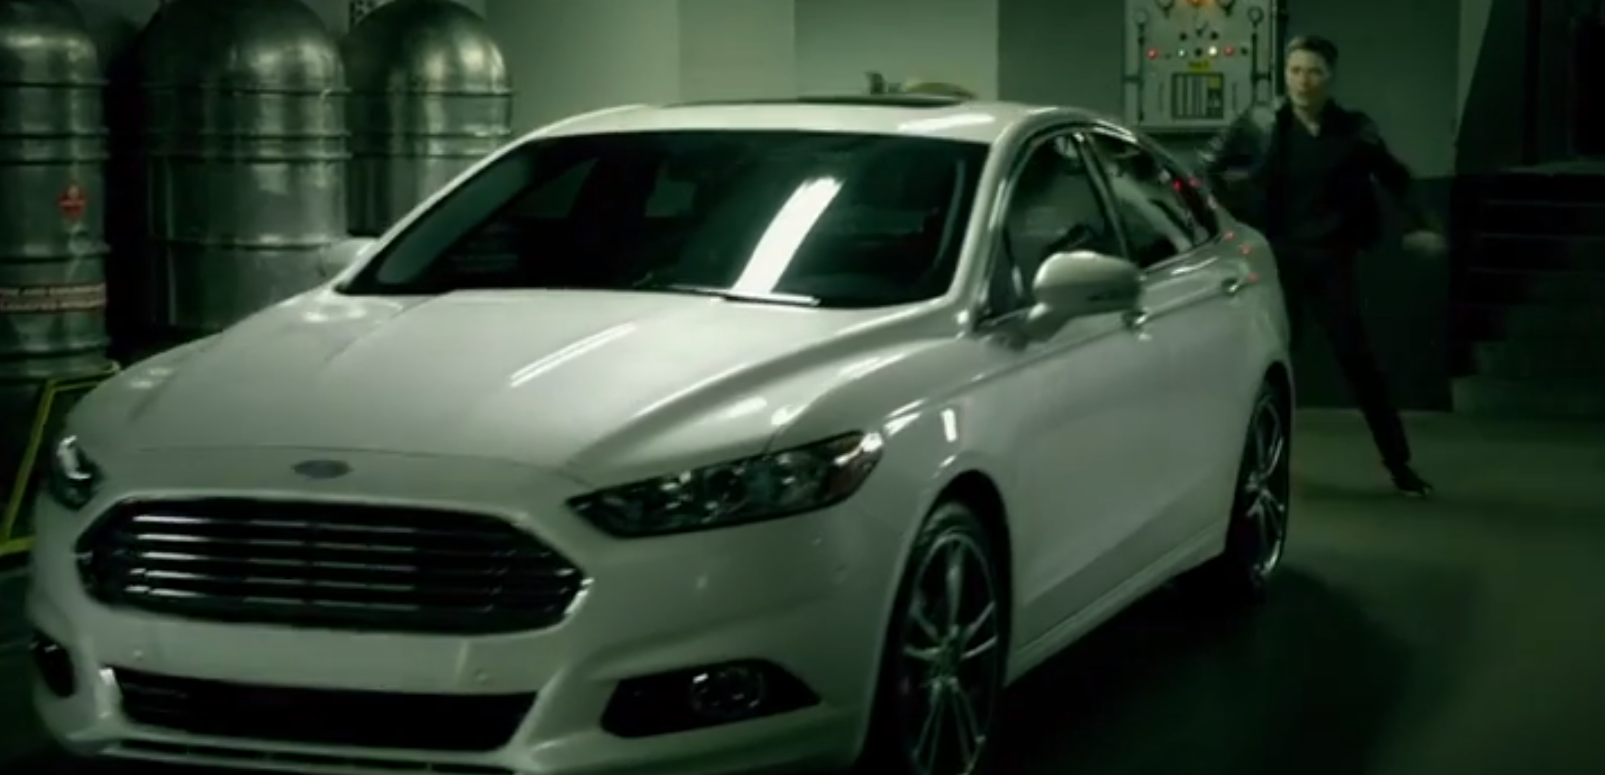 ford fusion commercial calls toyota owners mindless. Cars Review. Best American Auto & Cars Review